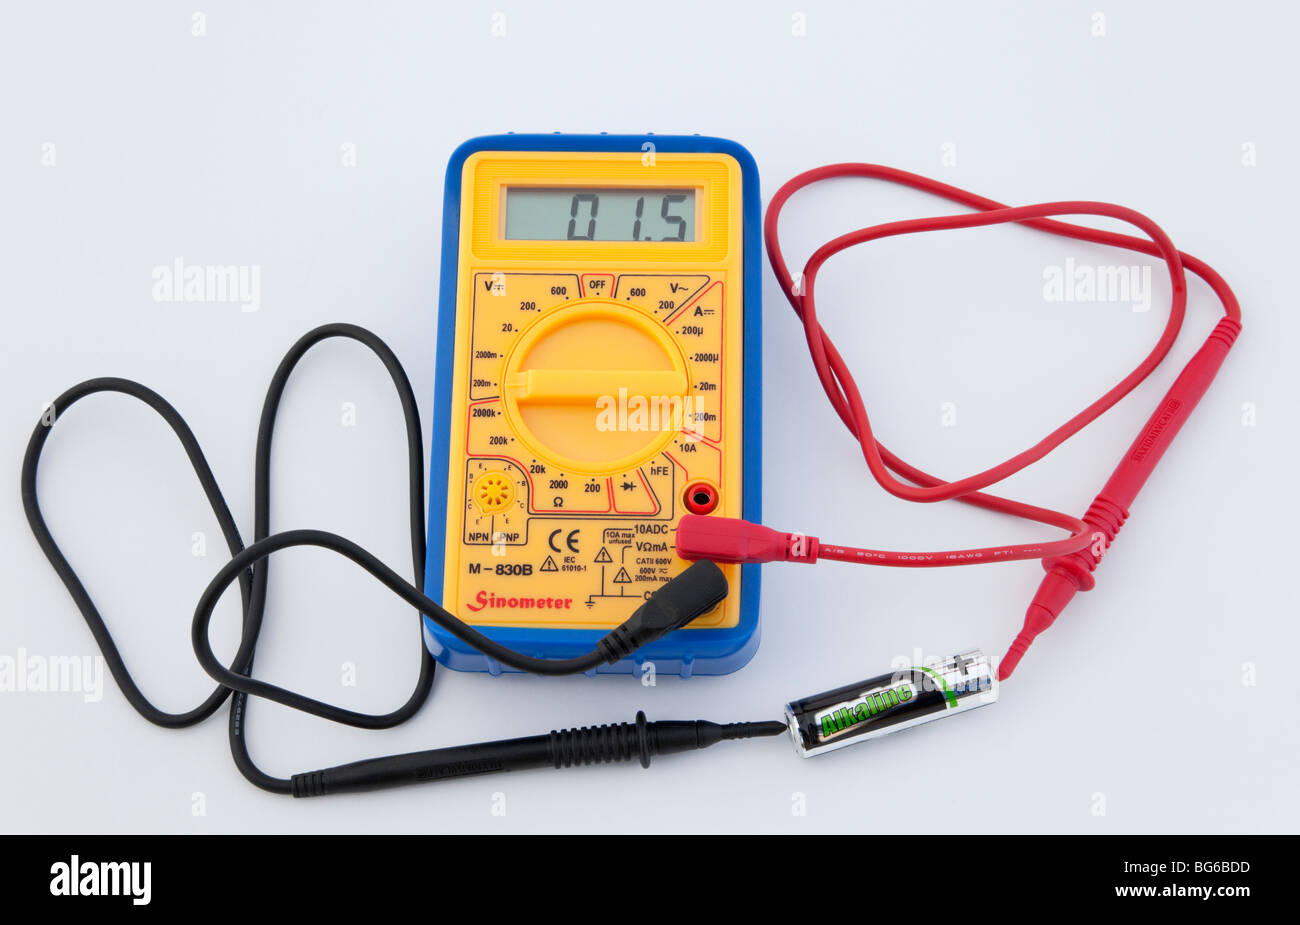 Digital multimeter measuring AA battery voltage on a white background. - Stock Image